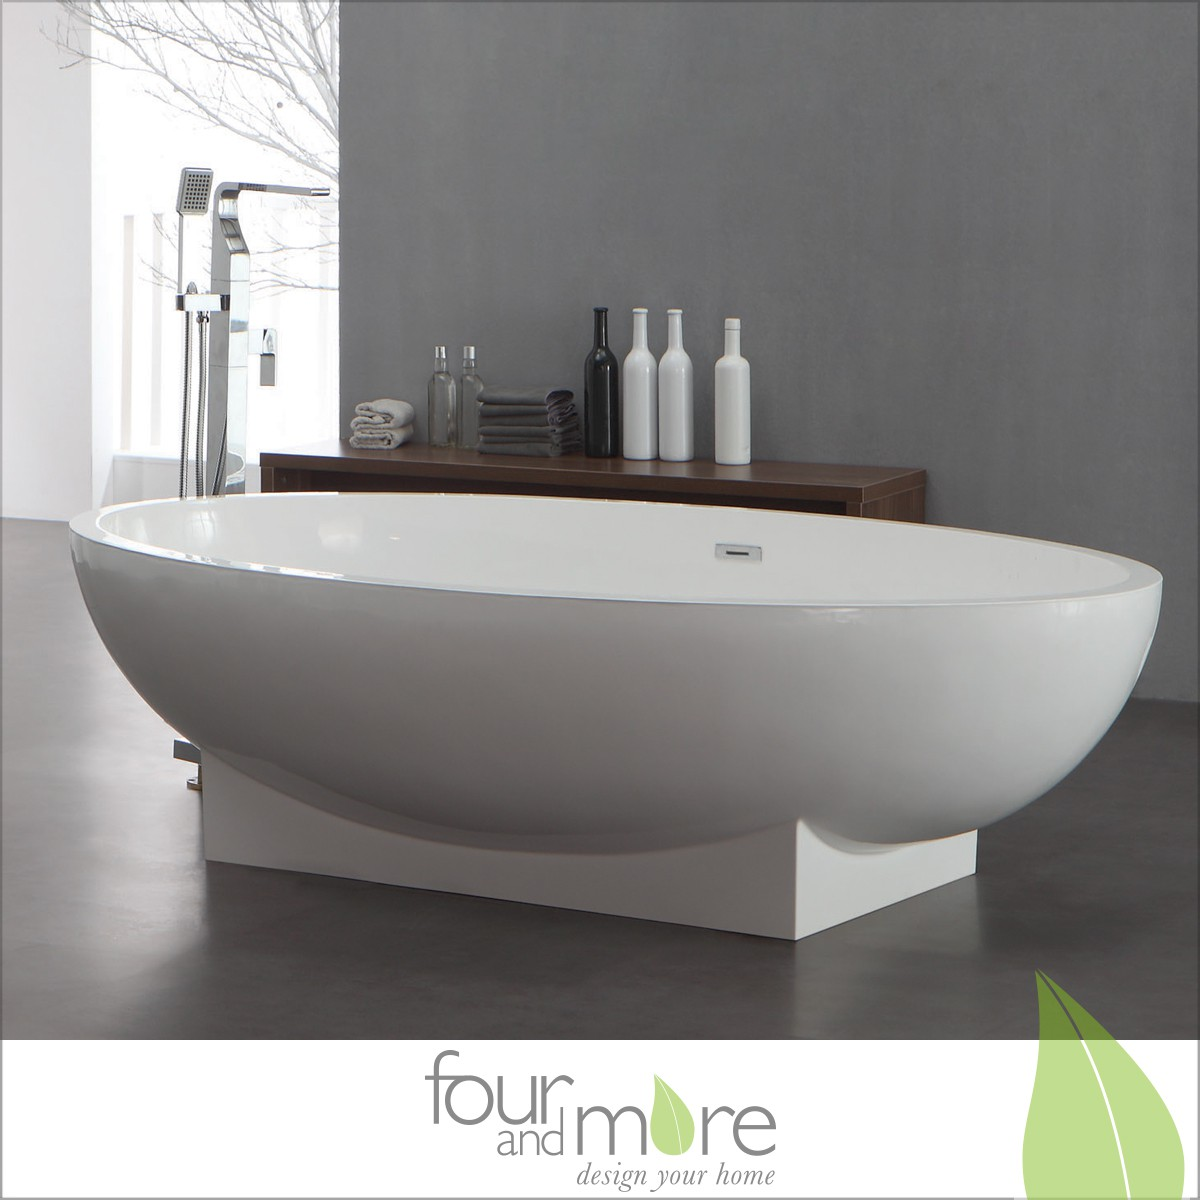 freistehende design badewanne aus mineralguss composite stone 190 x 120 cm. Black Bedroom Furniture Sets. Home Design Ideas